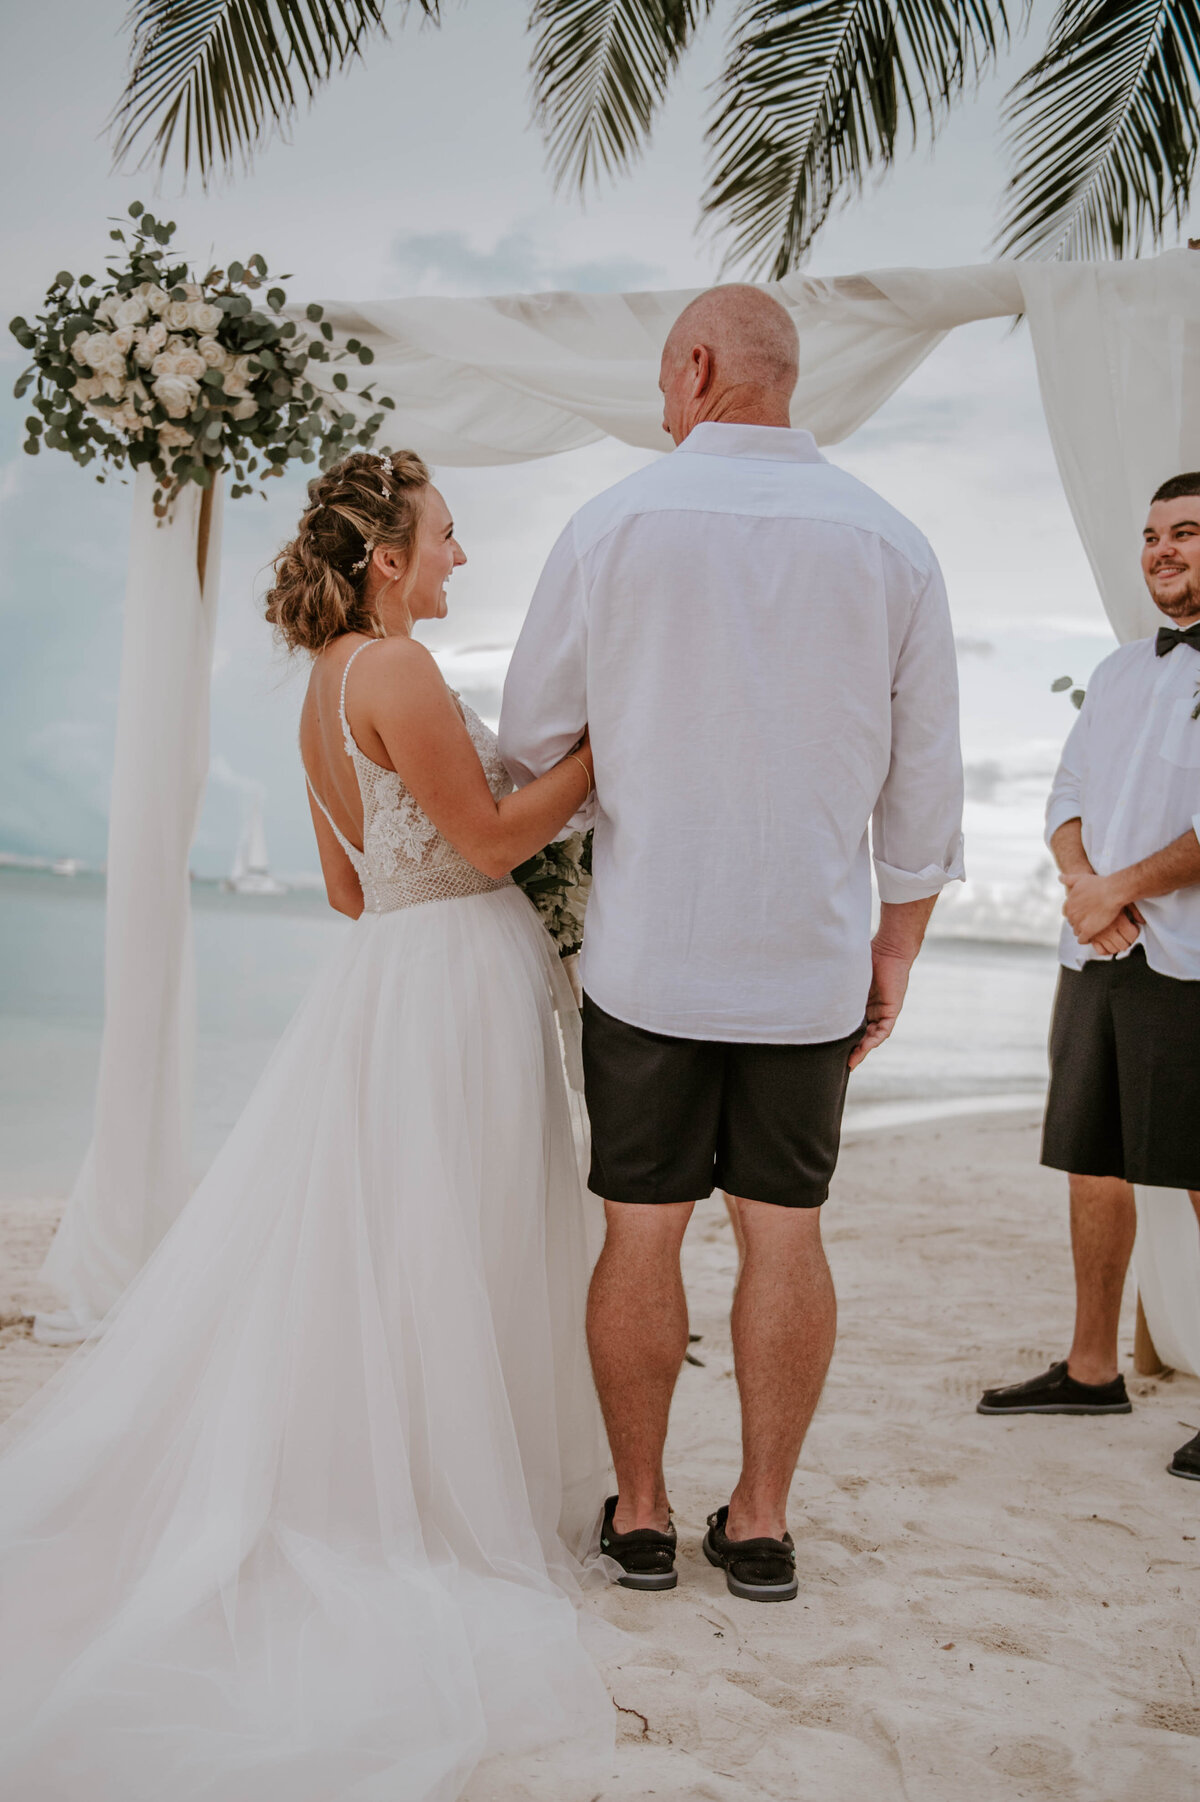 isla-mujeres-wedding-photographer-guthrie-zama-mexico-tulum-cancun-beach-destination-1013